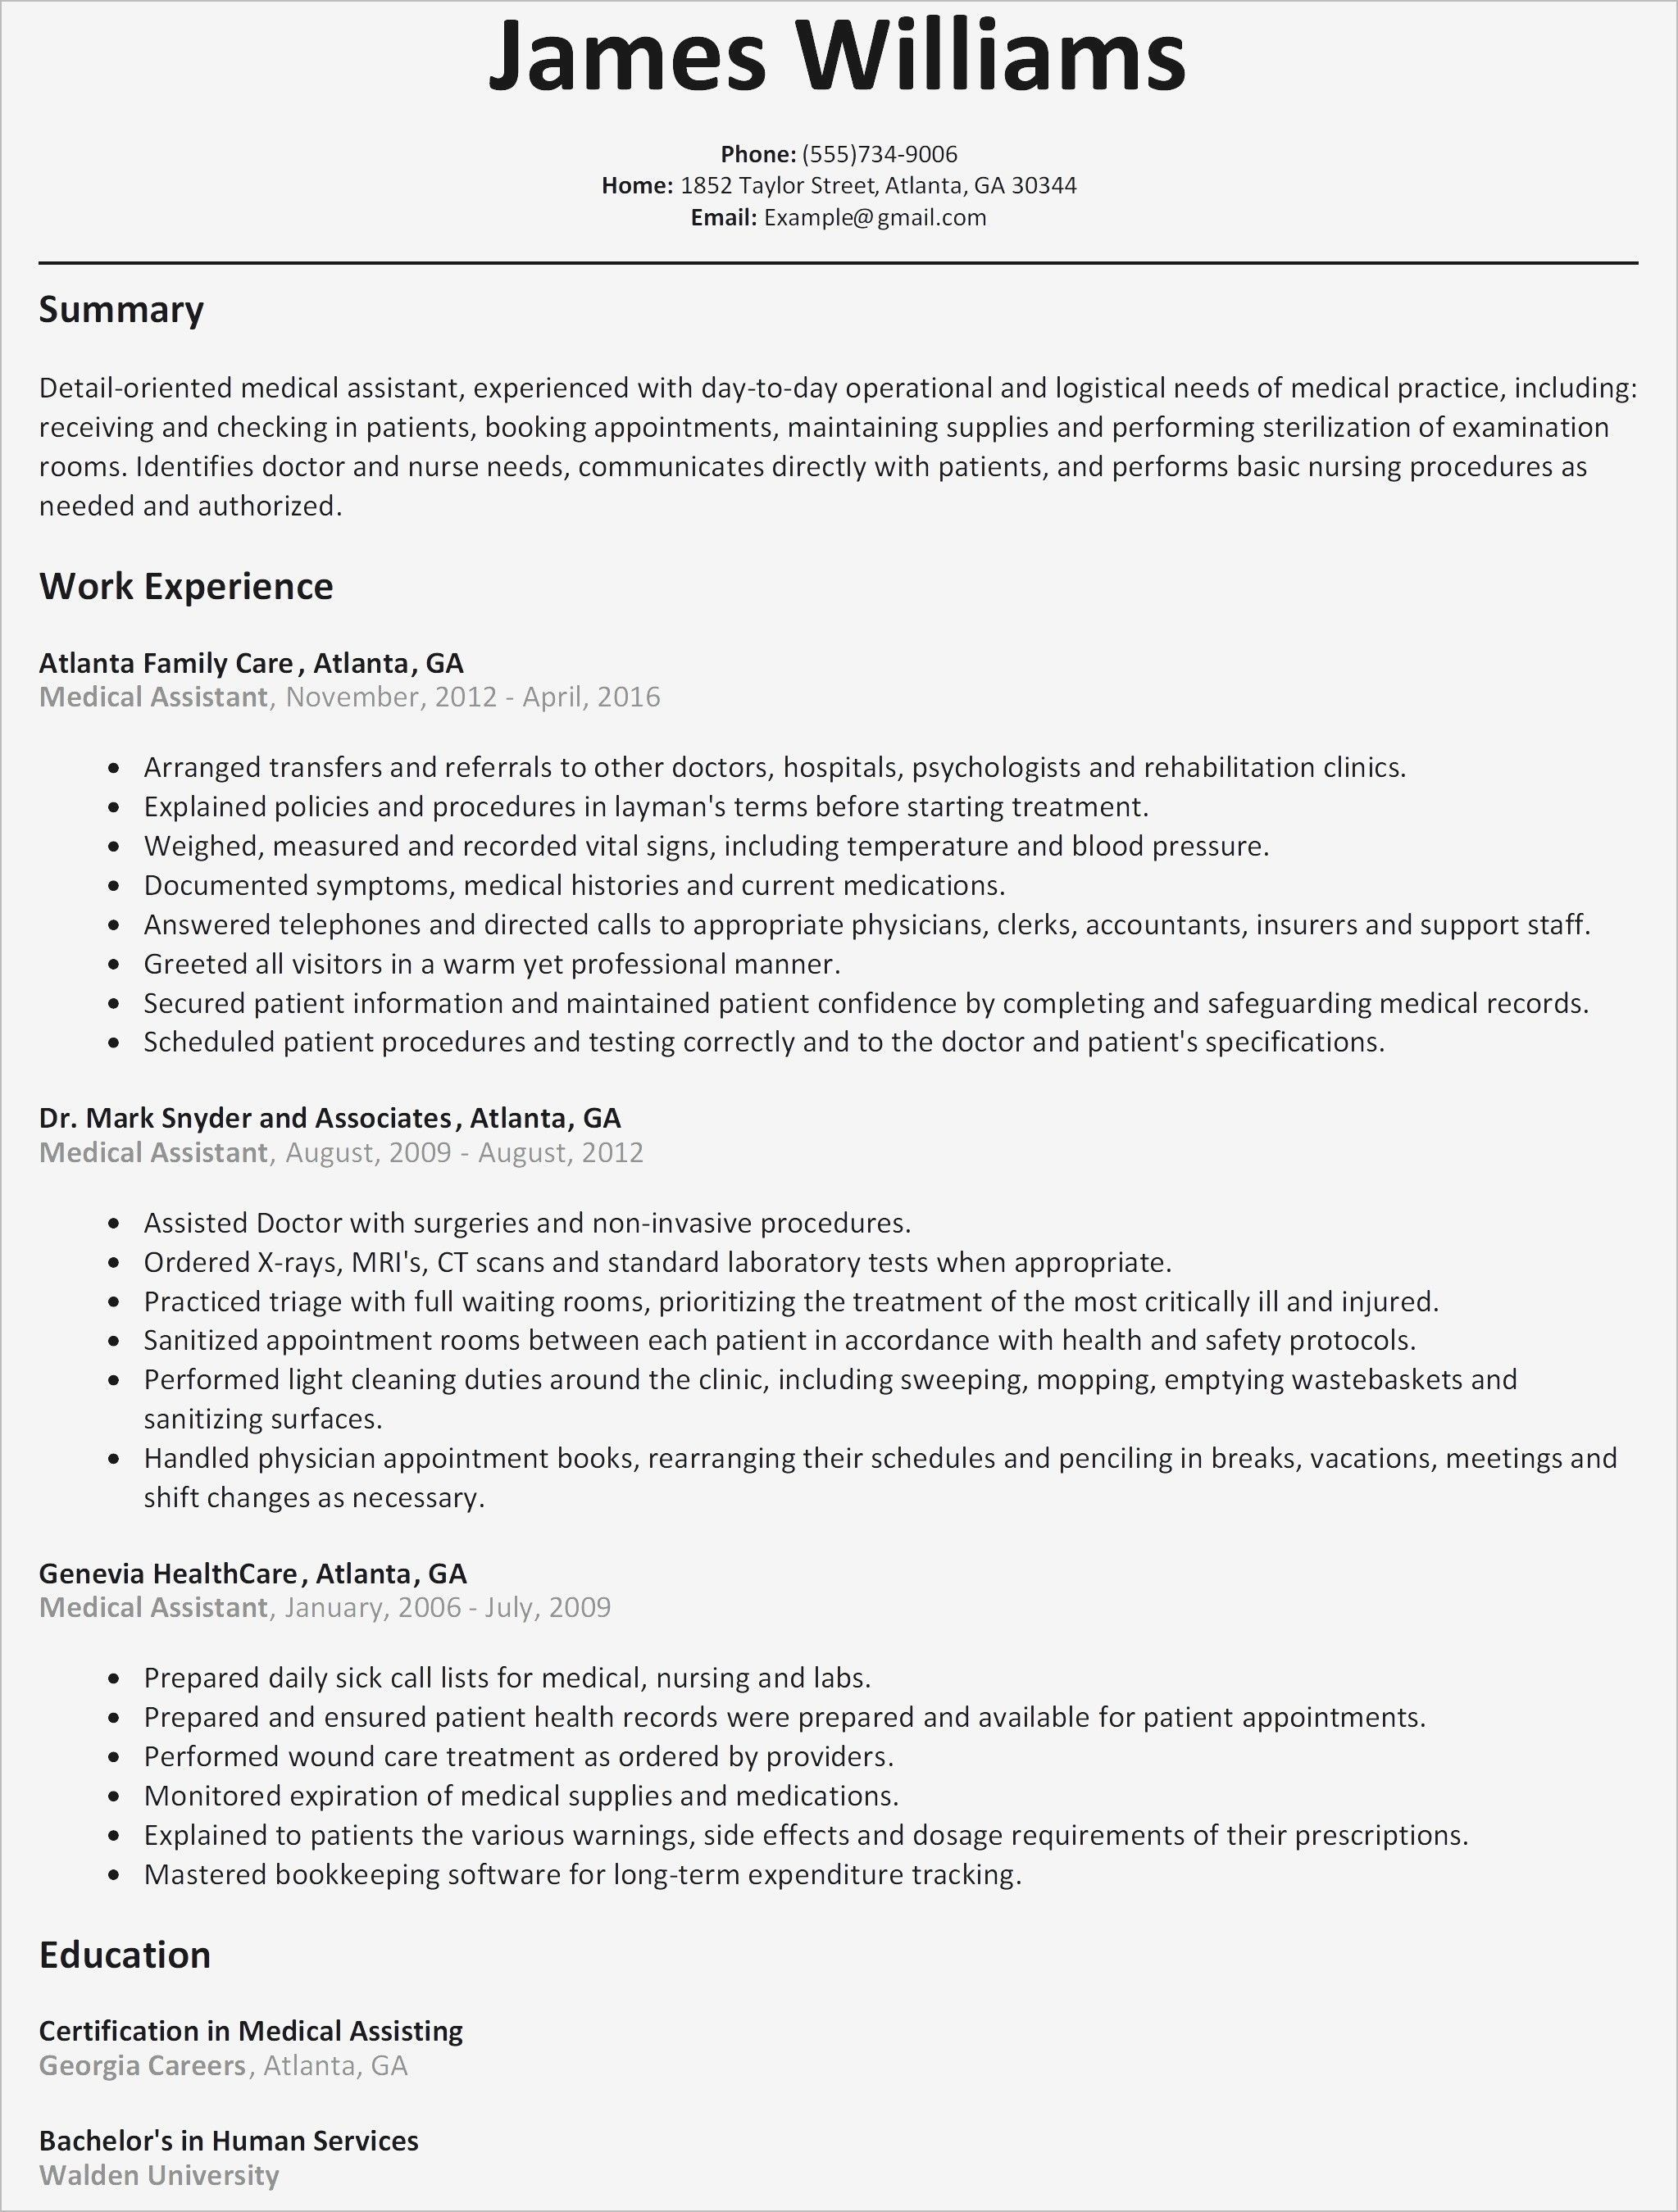 Cover Letter Template My Perfect Resume Cover Coverlettertemplate Letter Medical Assistant Resume Resume Summary Examples Administrative Assistant Resume